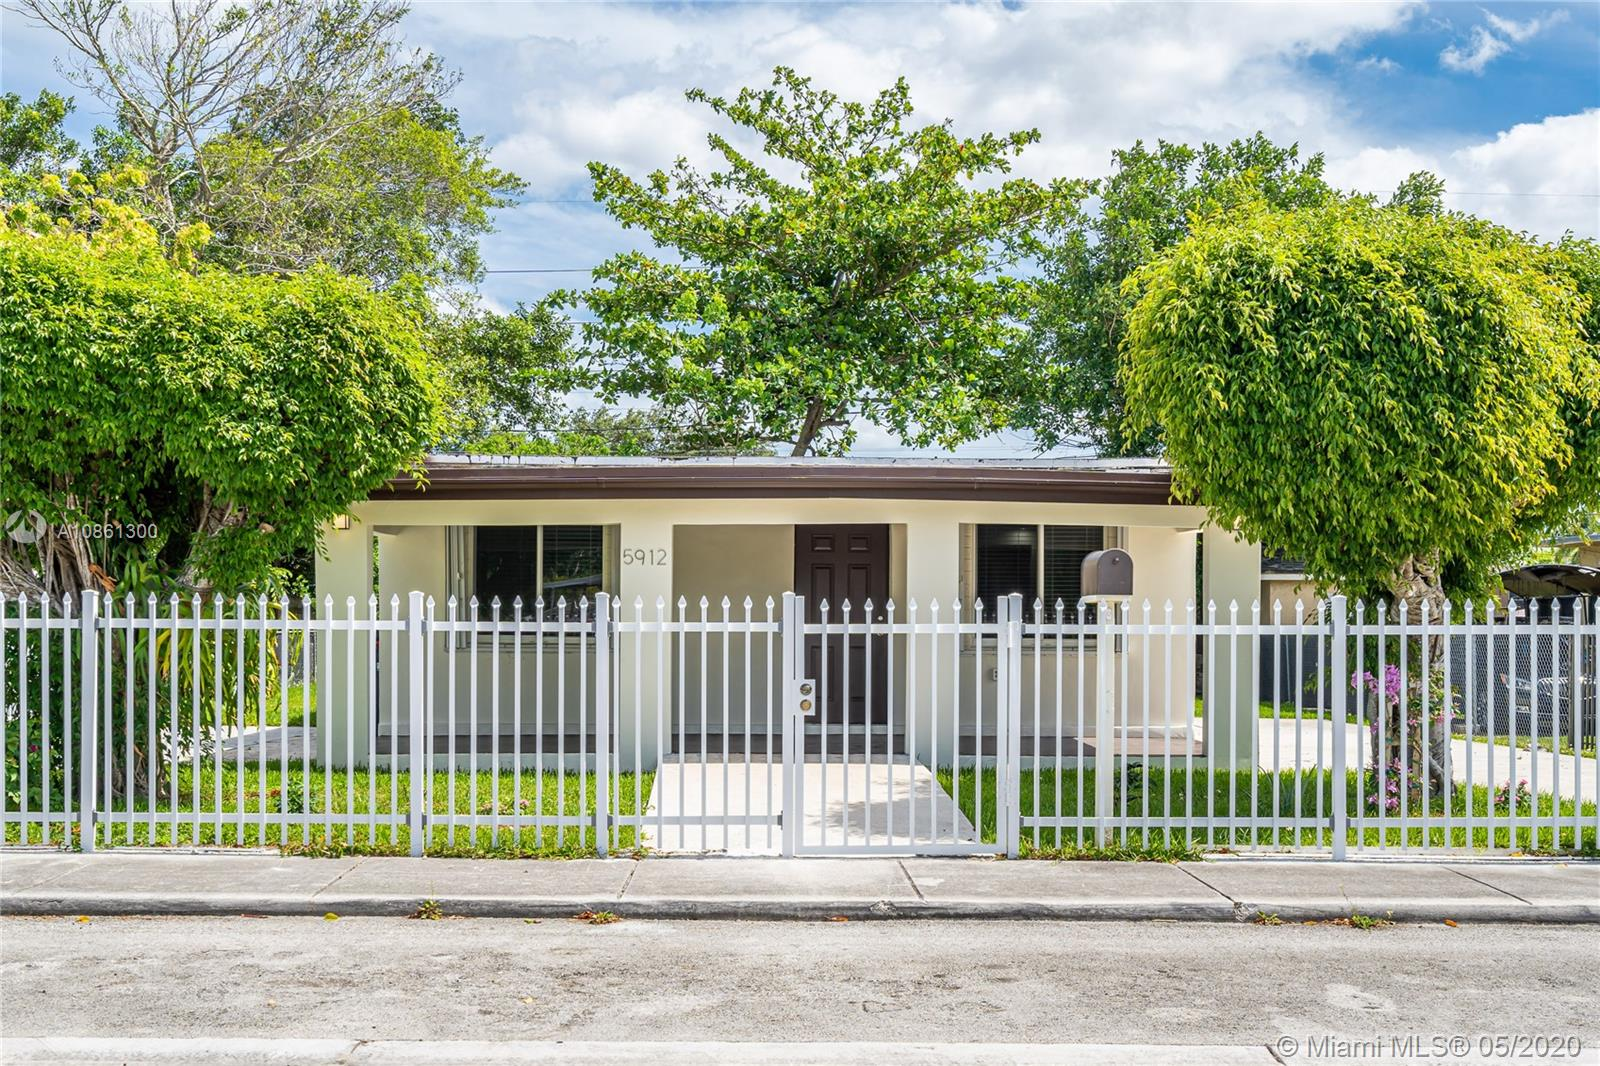 MUST SEE! Nice modern home sitting on a large lot. Solid construction with a brand-new flat roof. Within the highly sought after neighborhood of South Miami. This home would be a great home for a couple with kids or UM students. Features 3 beds, 2 baths, living/dining area combo, renovated kitchen with new cabinets and granite countertops, new Samsung stainless steel appliances, renovated baths, oversized master-room, and a large yard for multiple cars, a boat/ RV. Modern tiles throughout, new light fixtures, freshly painter (interior and exterior), and new washer and dryer. Its location is amazing! Just 2 blocks from the University of Miami, 7 mins from South Miami Hospital, excellent school district, walking distance to the Metro Rail, shopping centers, dining & public transportation.